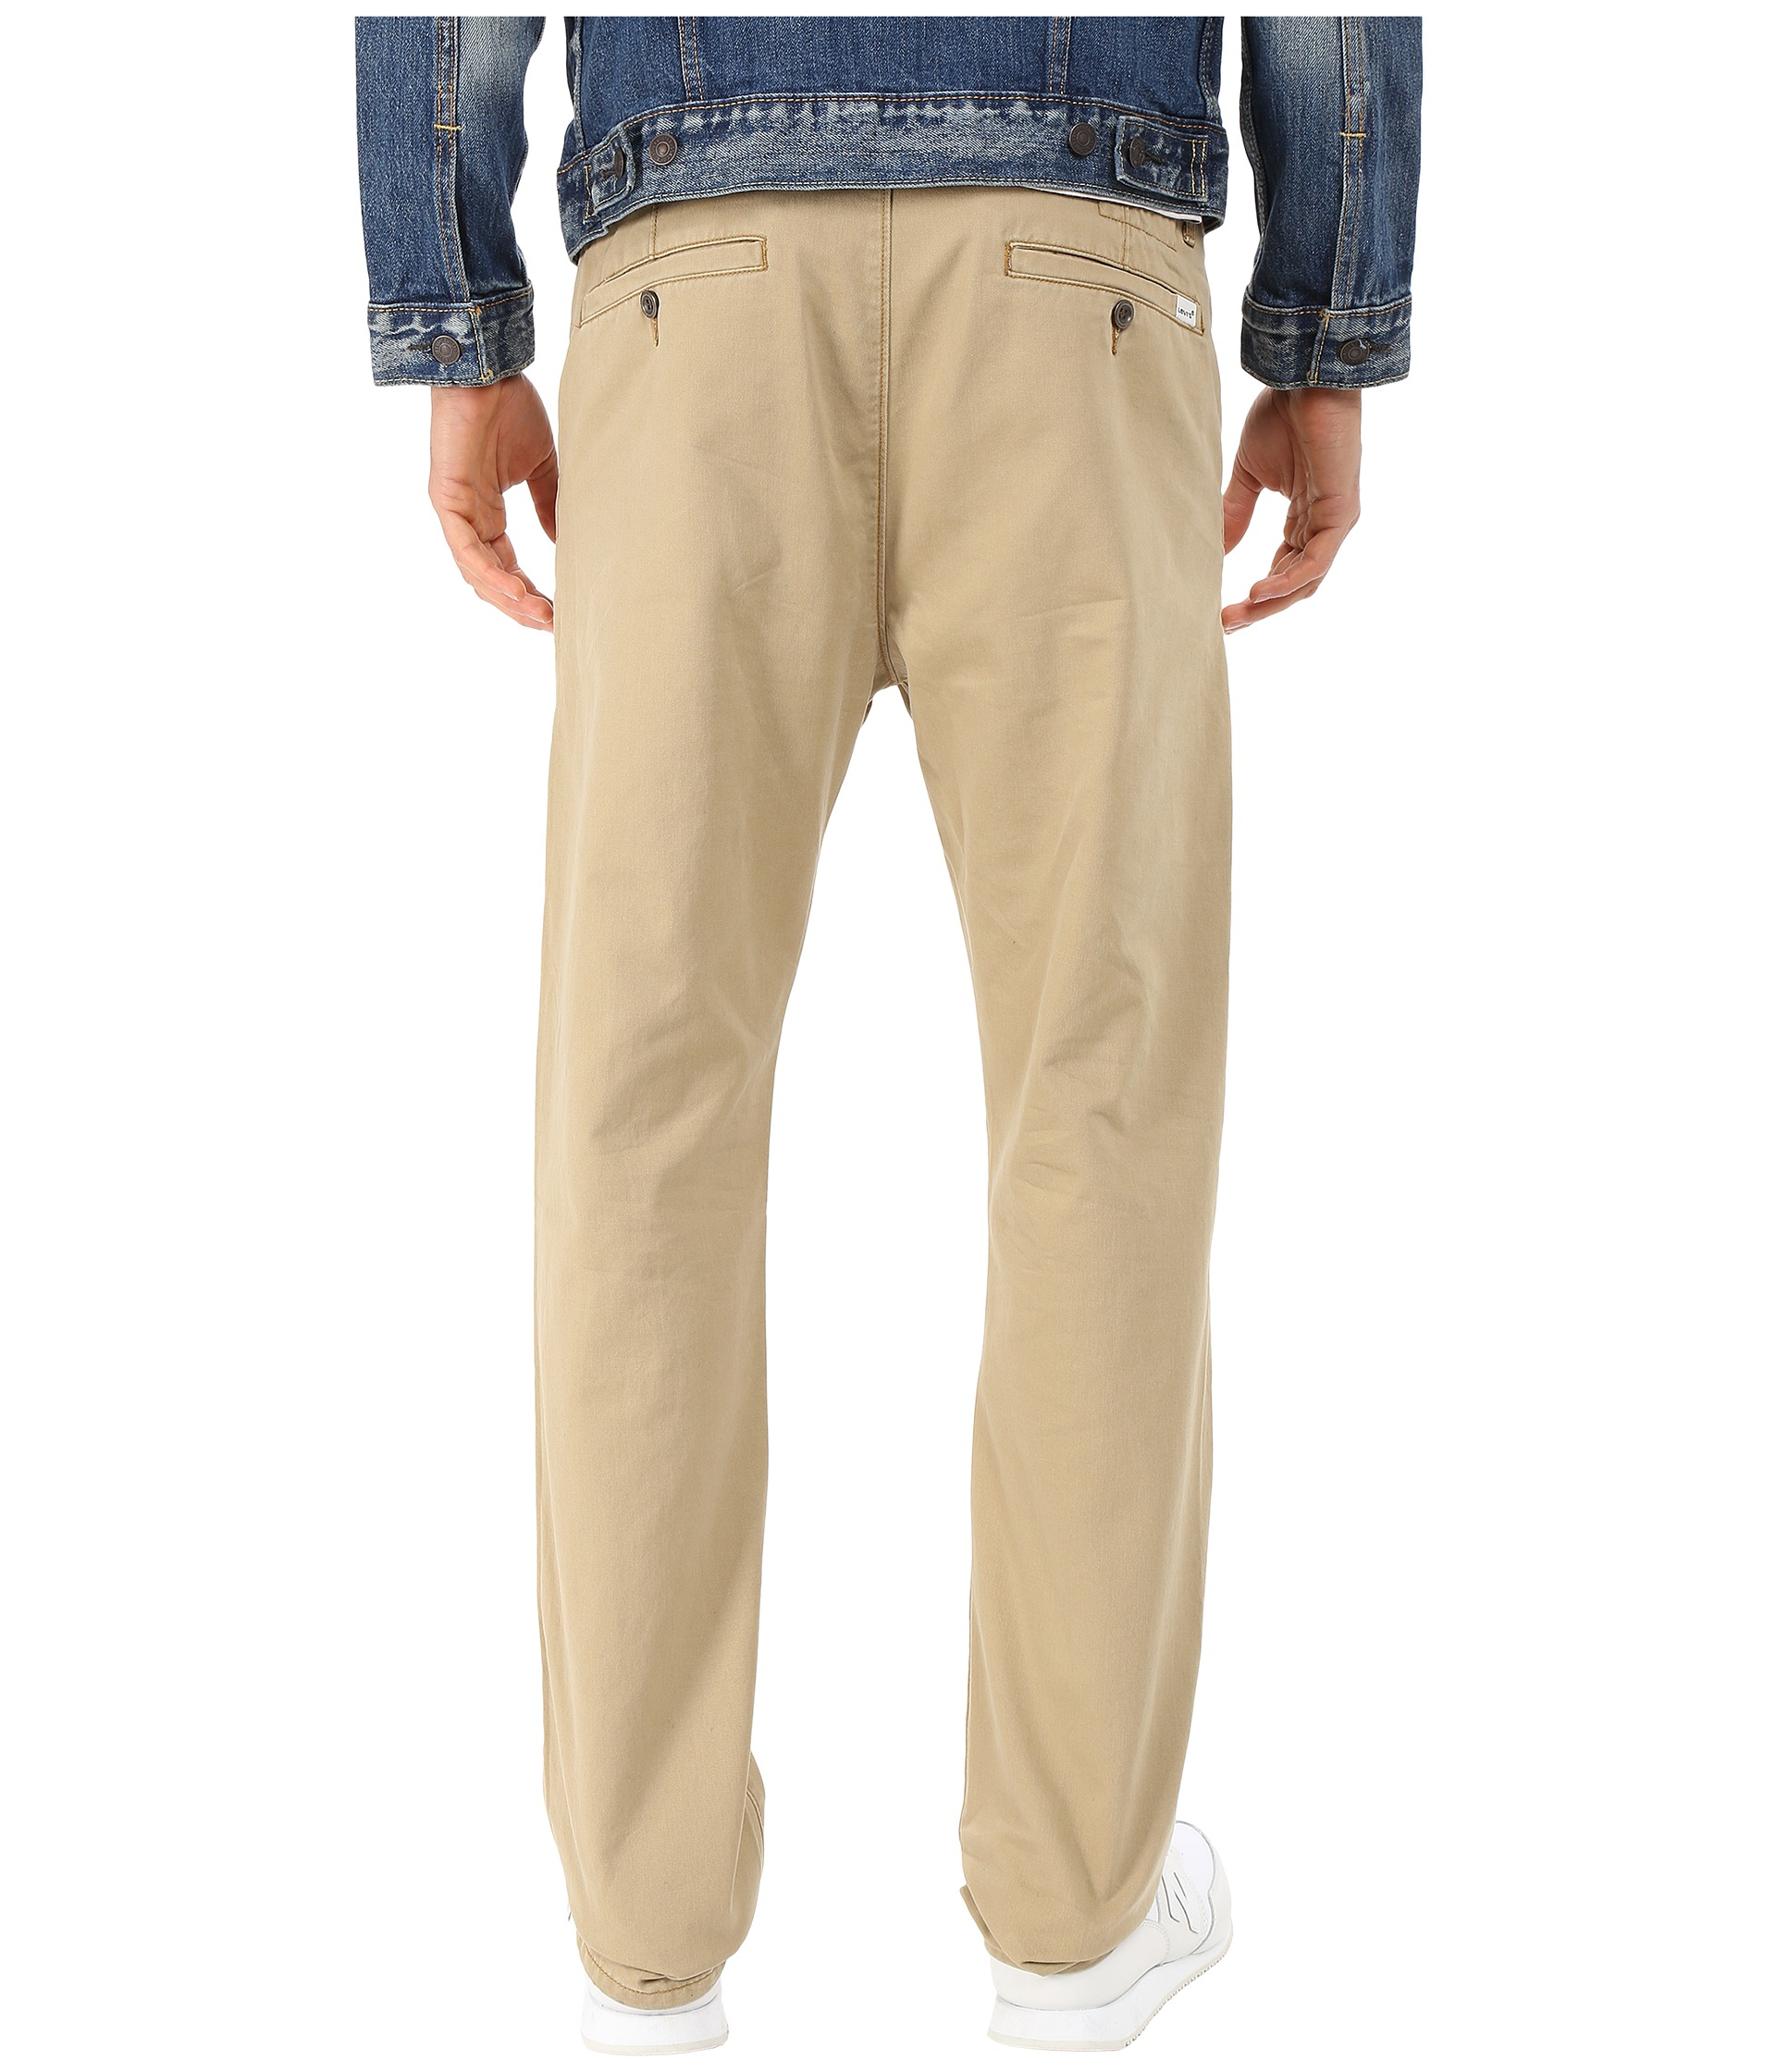 Levis Mens Chino Pant Zapposcom Free Shipping BOTH Ways